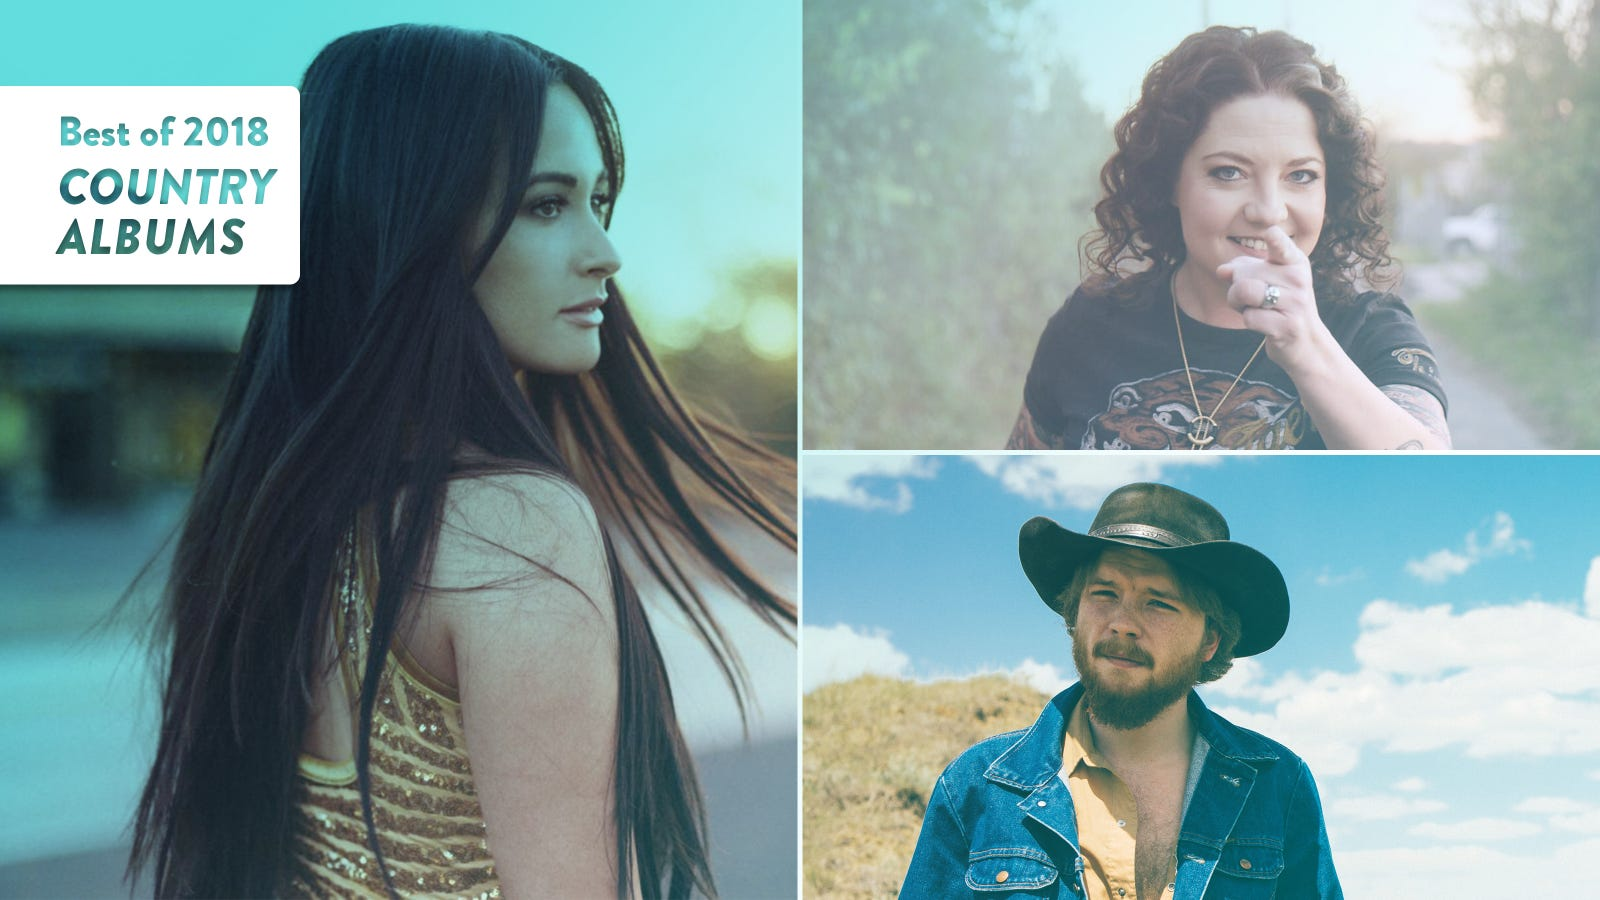 The best country albums of 2018